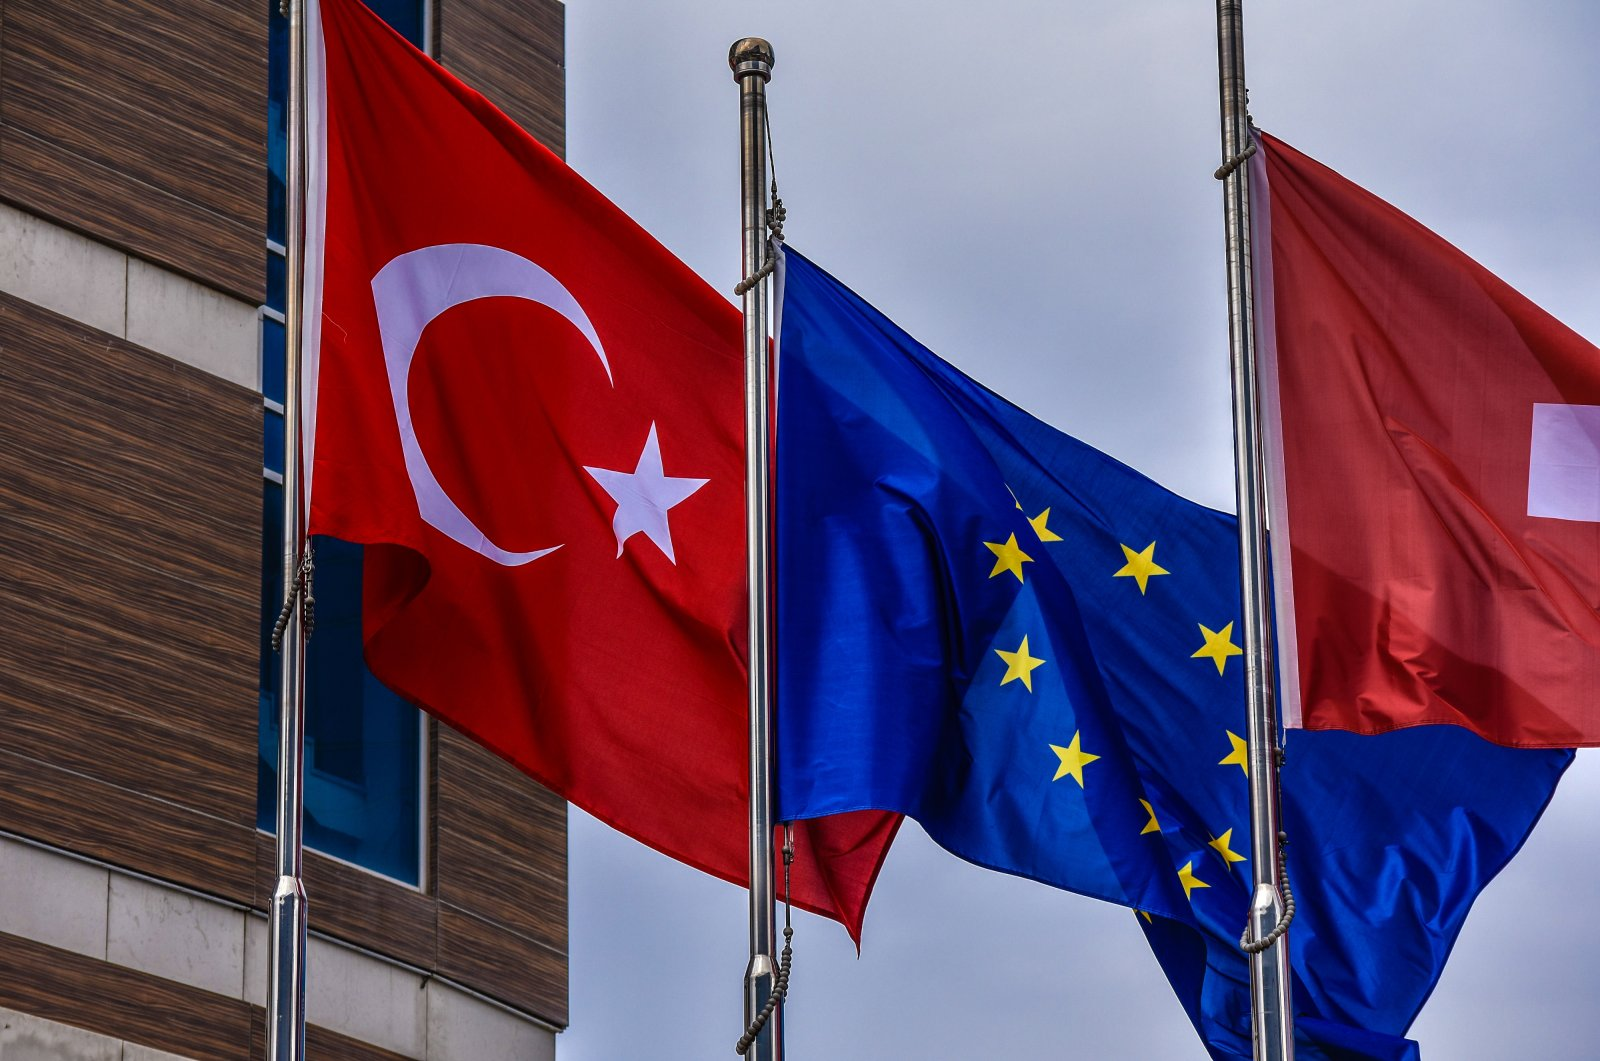 Turkish and European Union flags flutter in the wind outside a hotel in Söğütözü district, Ankara, Turkey. (Photo by Getty Images)